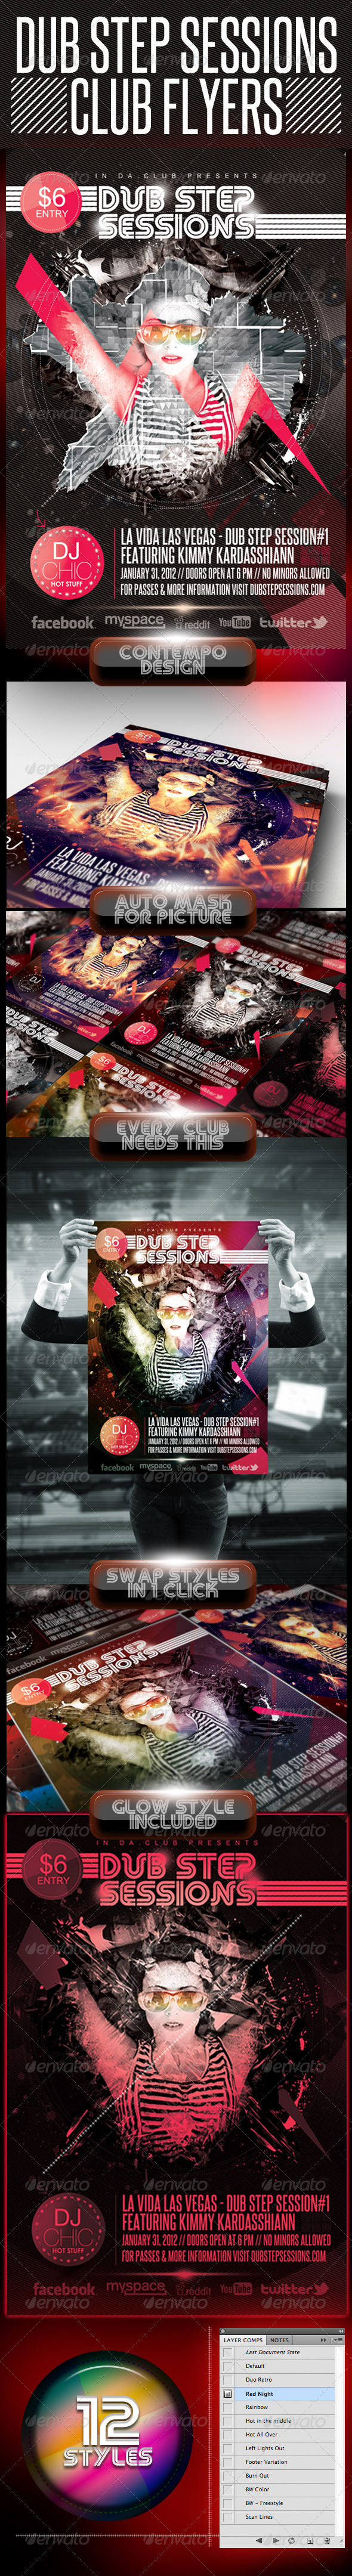 Dubstep Session Club Flyer - Clubs & Parties Events